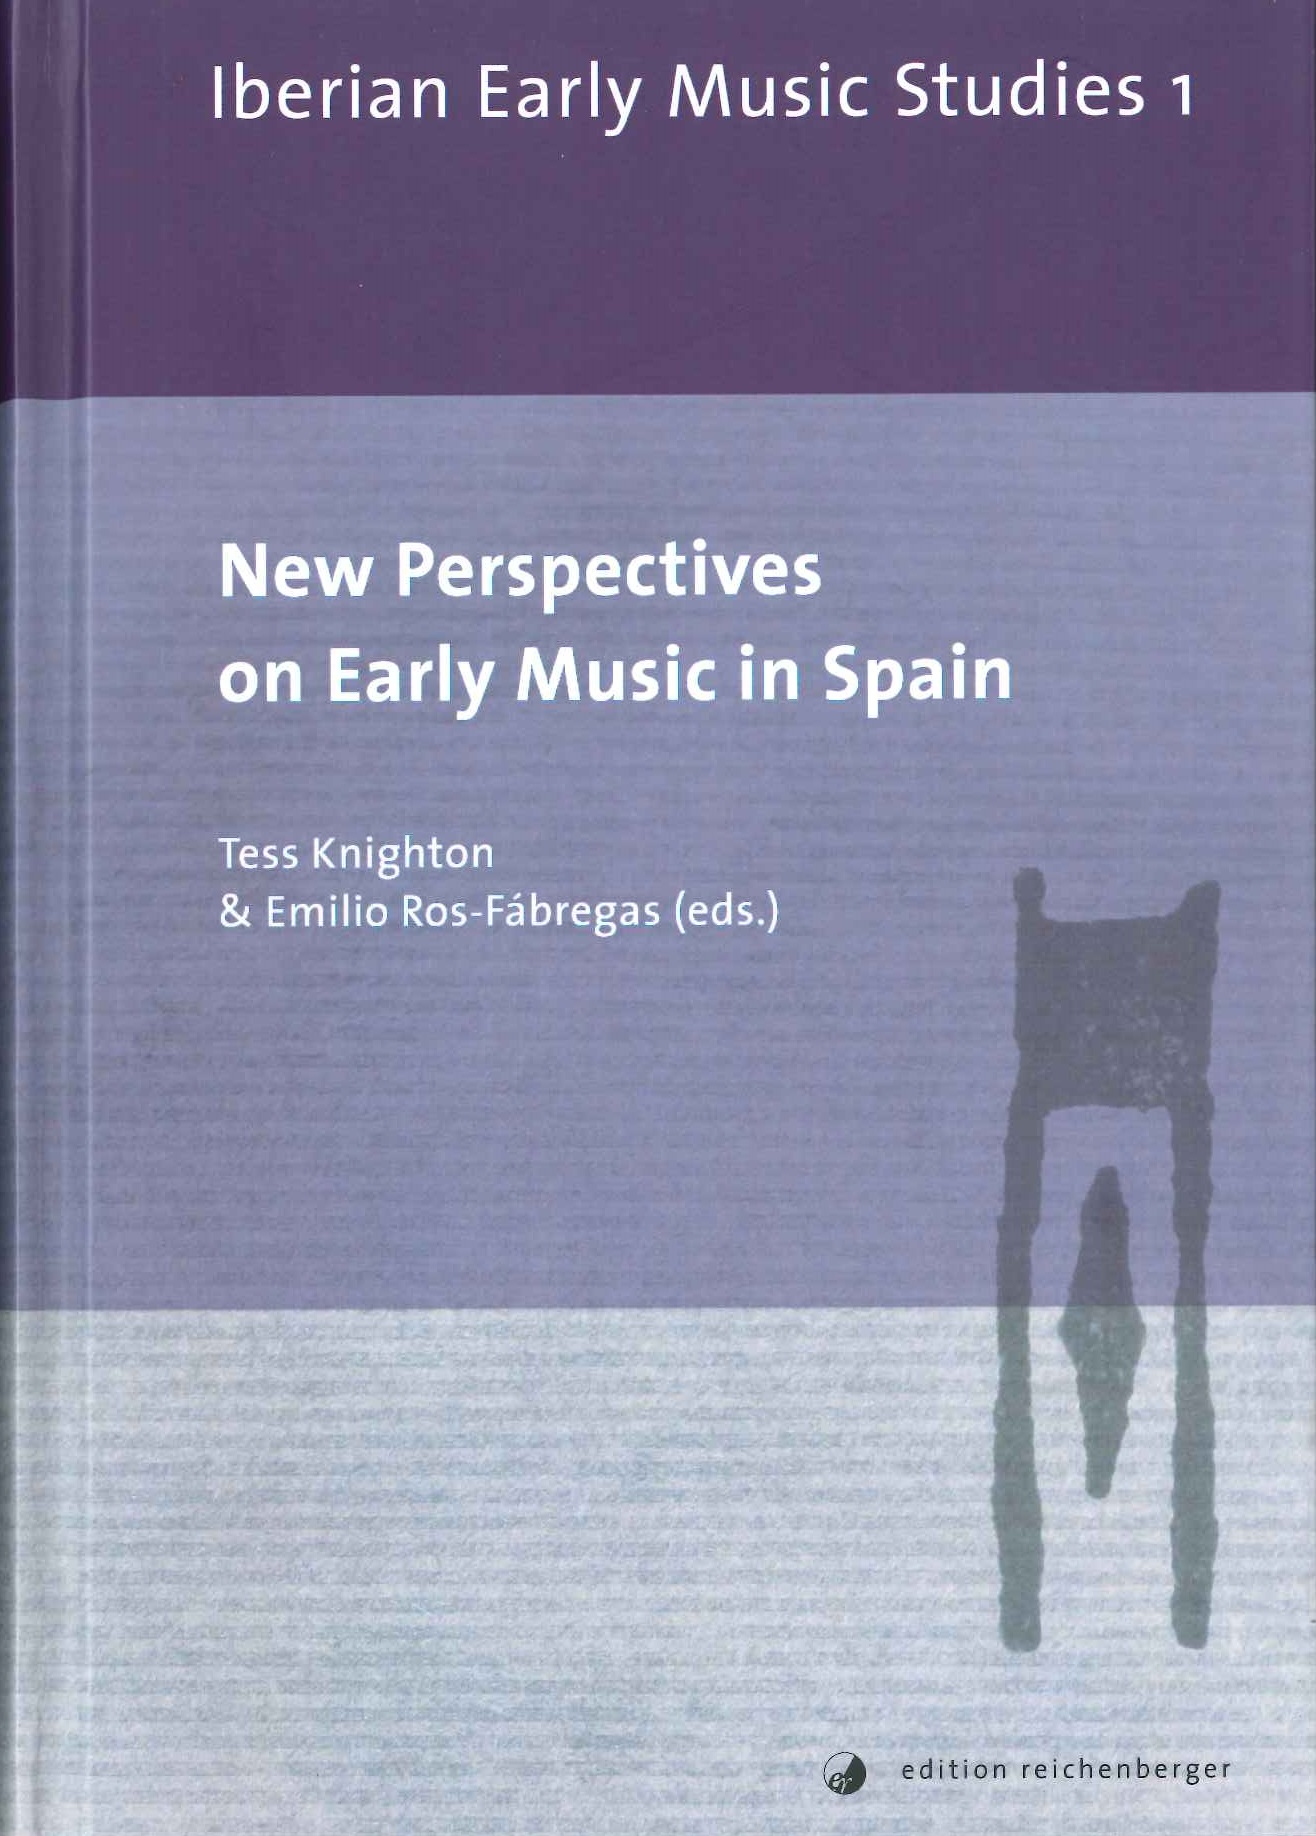 publicacio-de-new-perspectives-on-early-music-in-spain